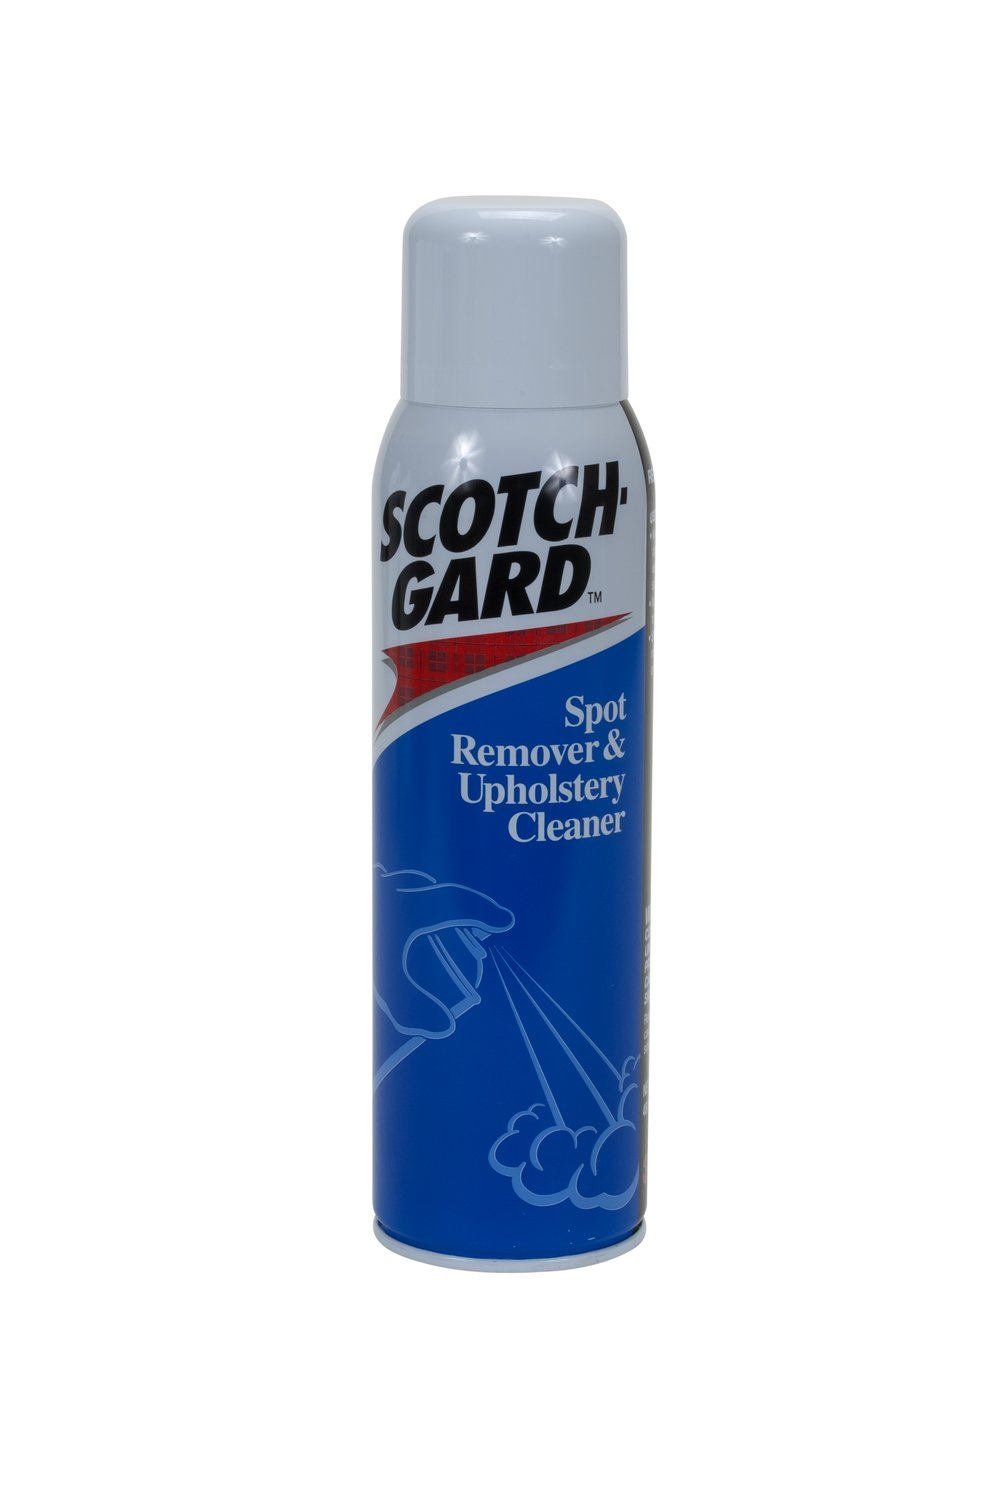 3m Scotchgard Spot Remover & Upholstery Cleaner